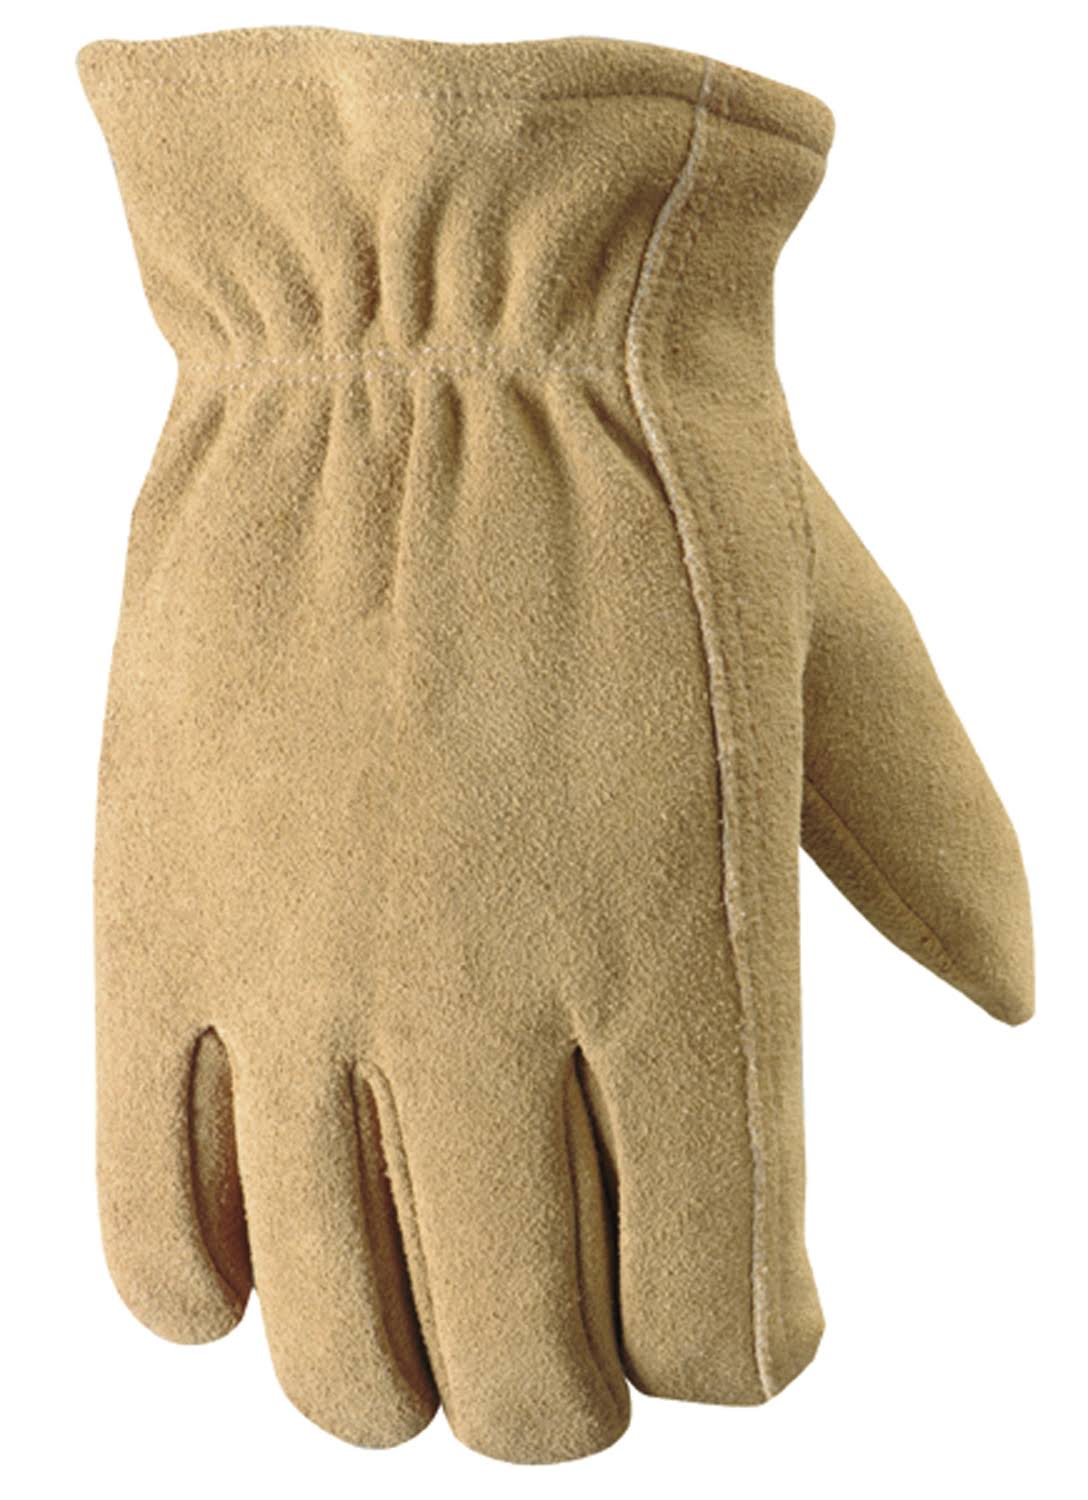 Wells Lamont 1091l Work Gloves - Timber Split Deerskin, Large